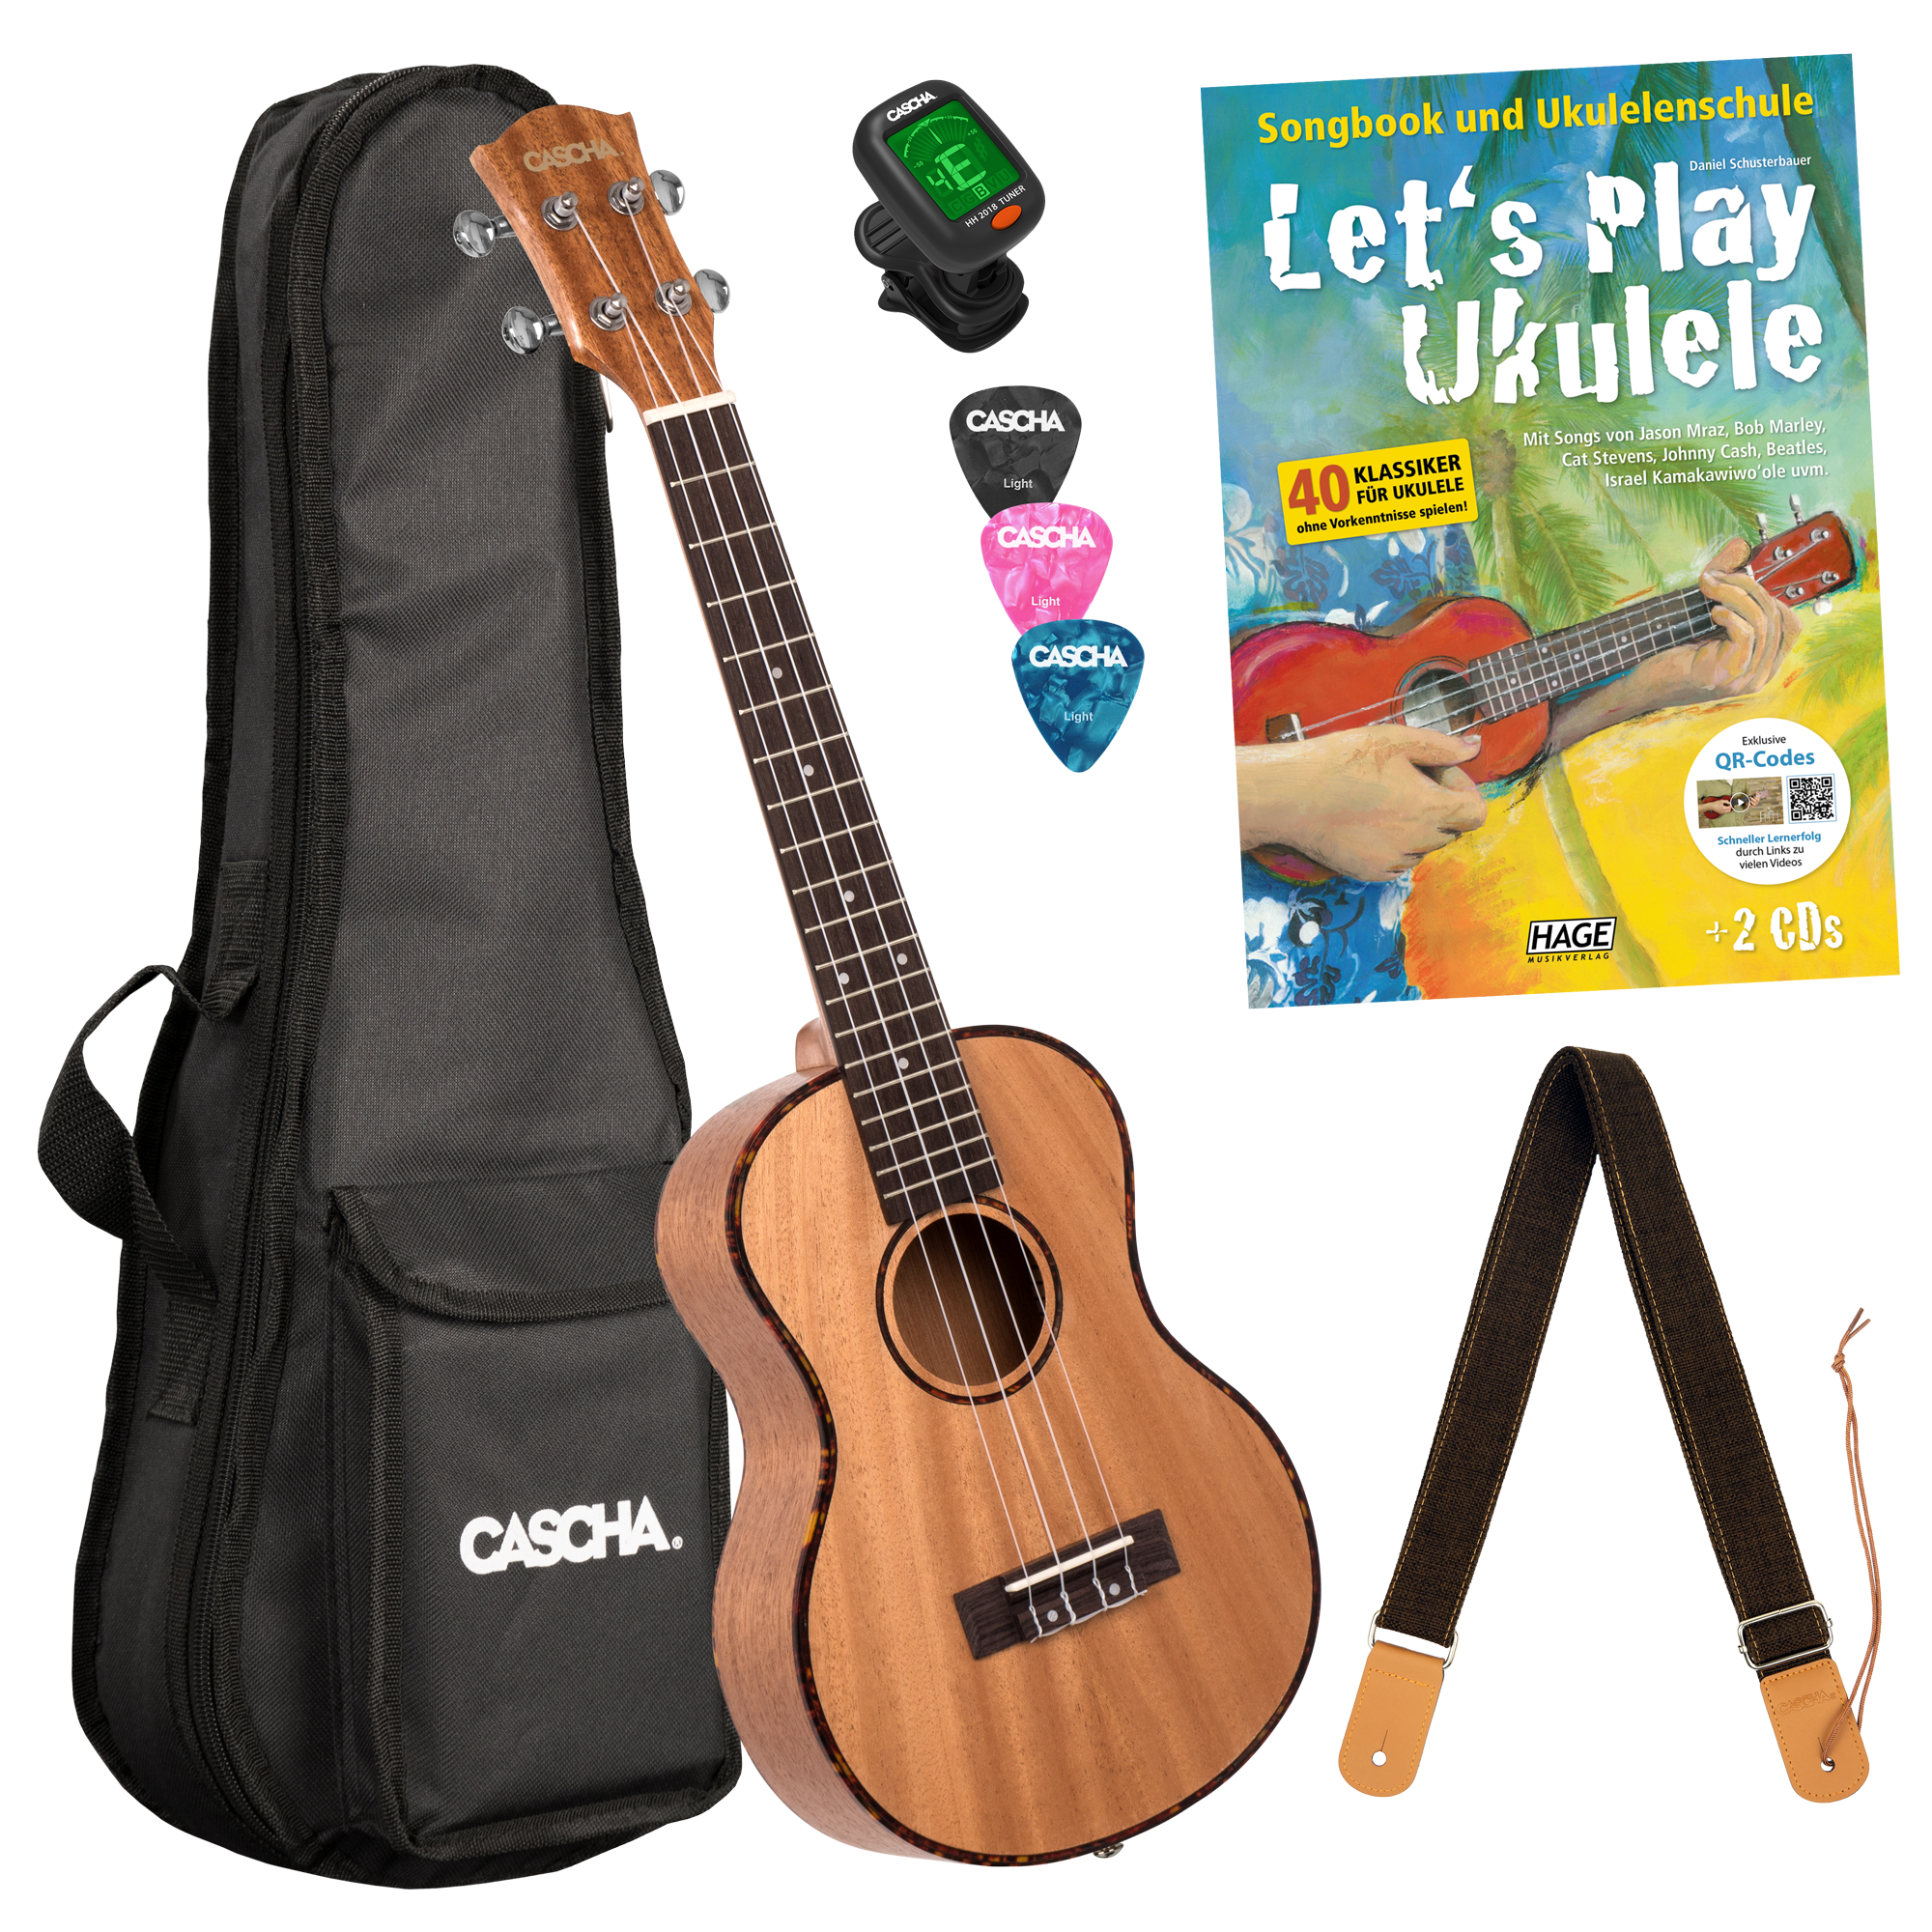 Let's Play Ukulele Einsteiger Set Tenor